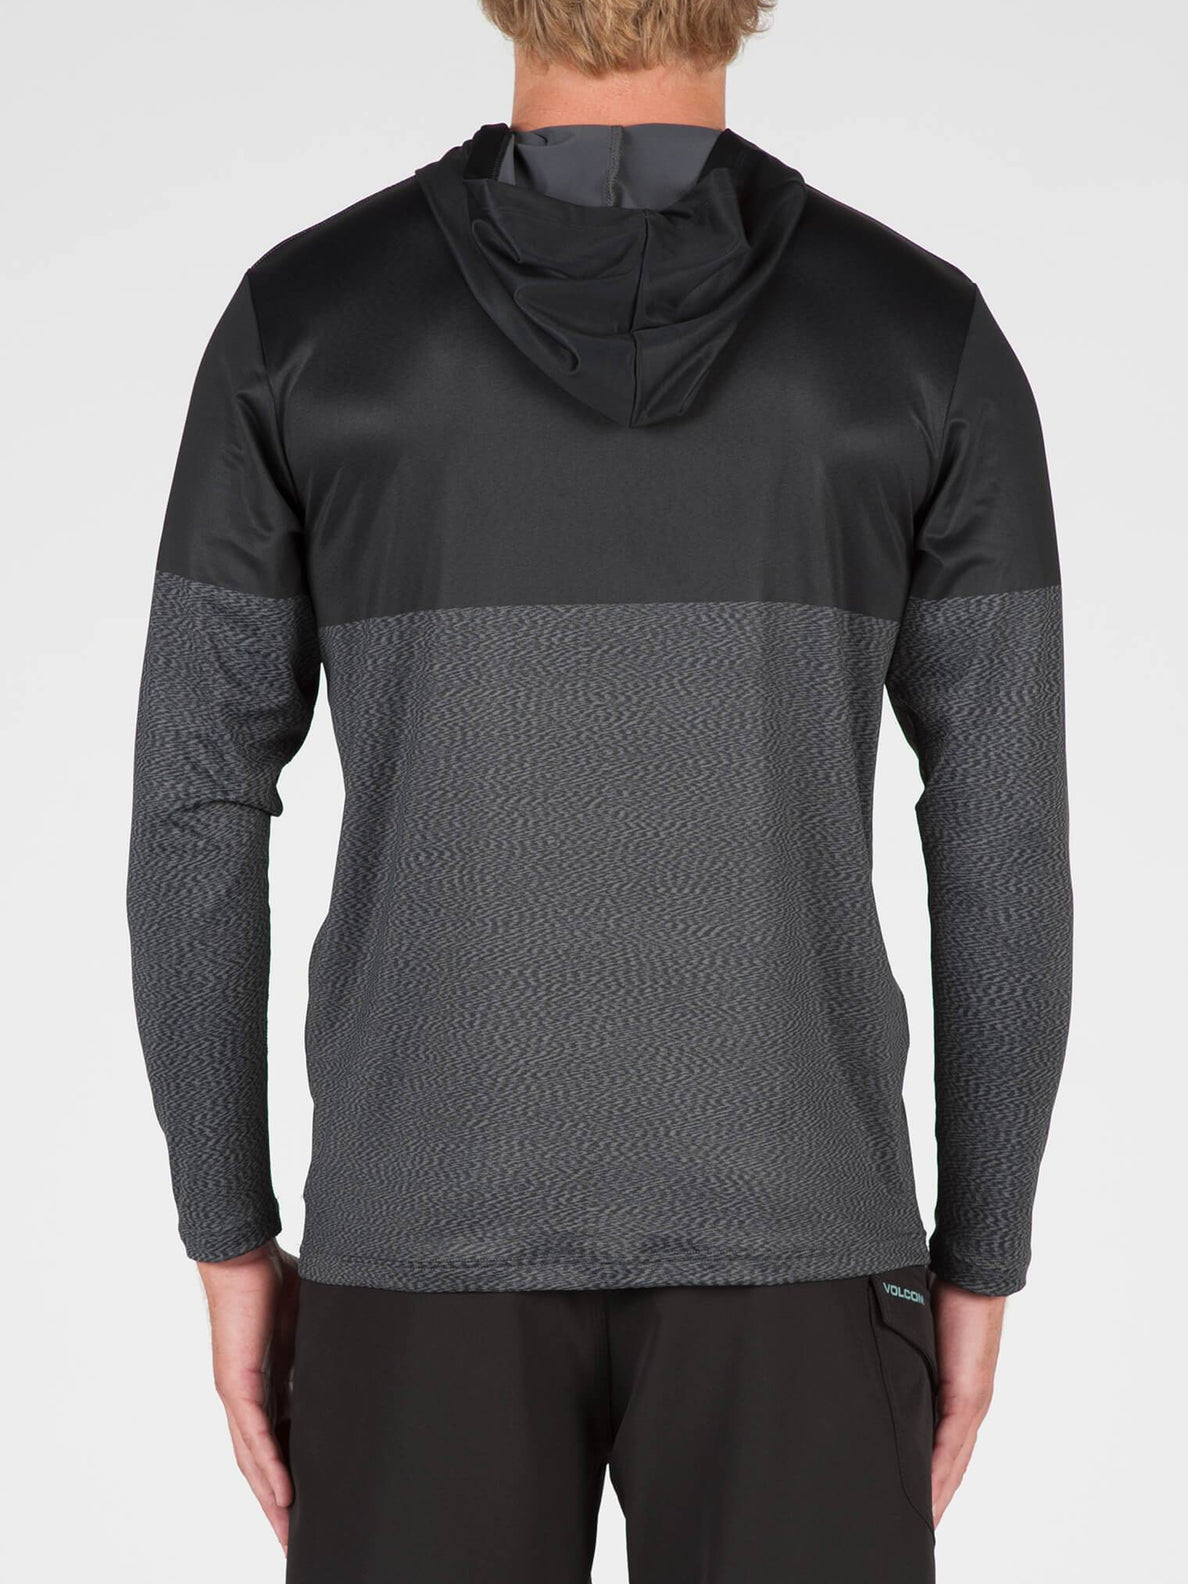 Distortion Block Long Sleeve Surf Shirt In Stealth, Back View